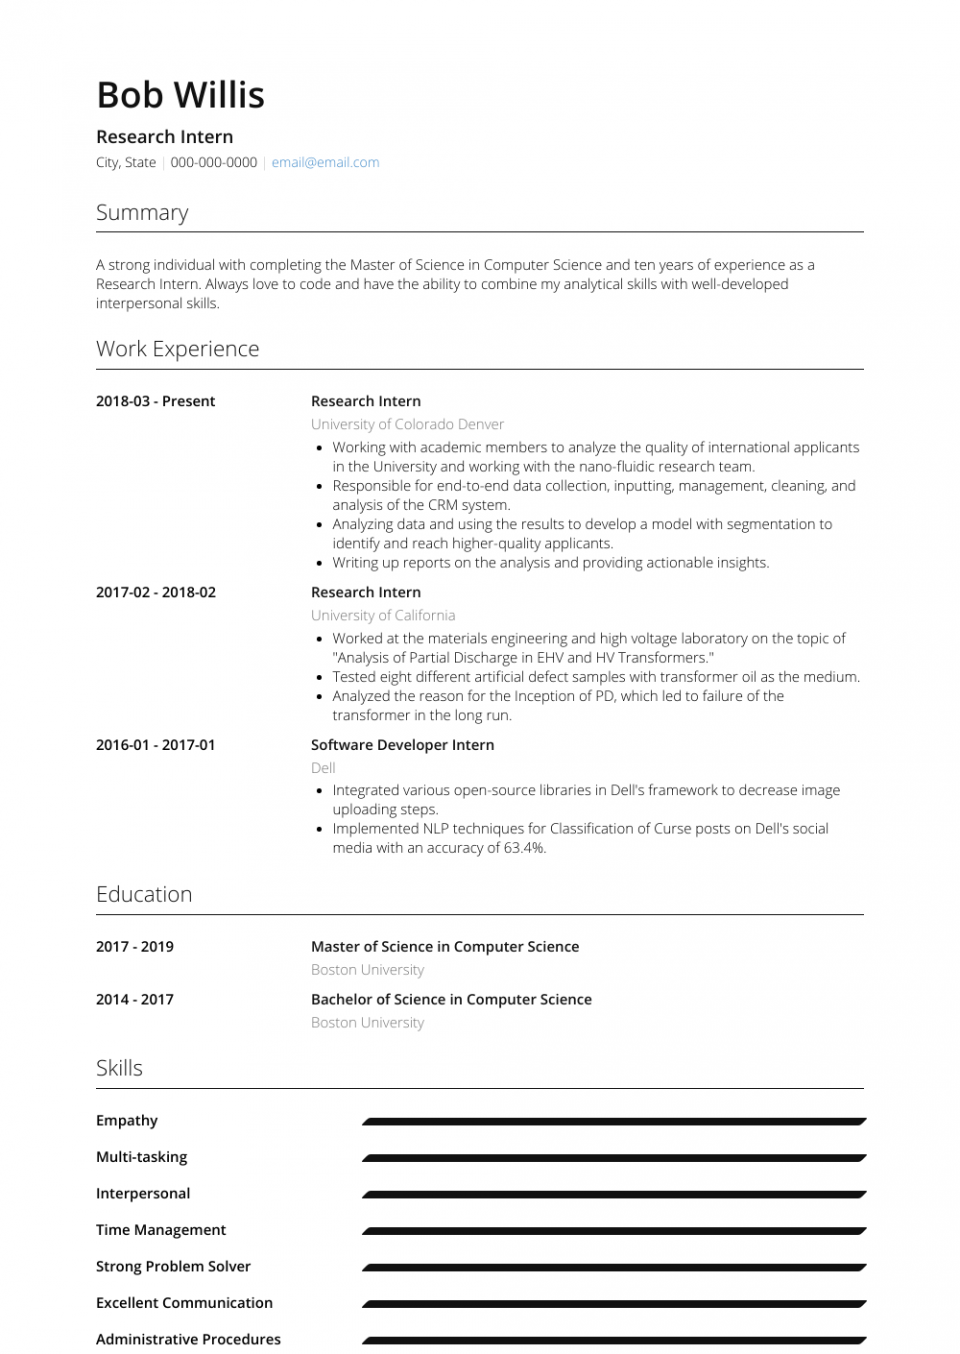 Computer Science Student Resume No Experience Luxury Legal Intern Resume Samples Templates Visualcv Internship